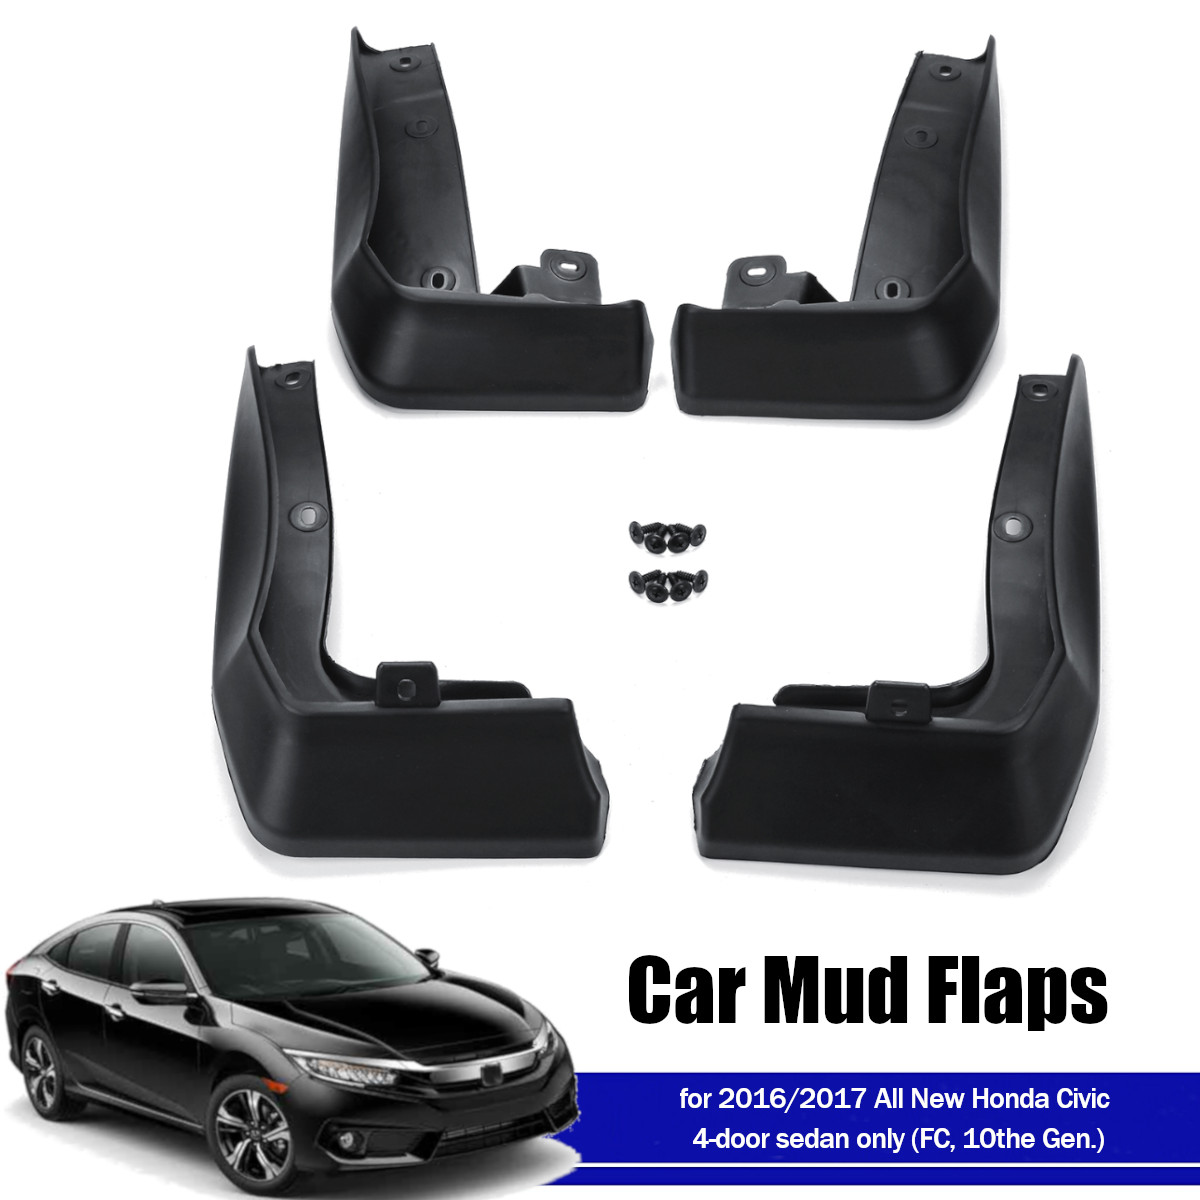 CIVIC SPORT SPORT TOURING HATCH 5 DOOR SPLASH GUARD SET 08P00-TGG-100A